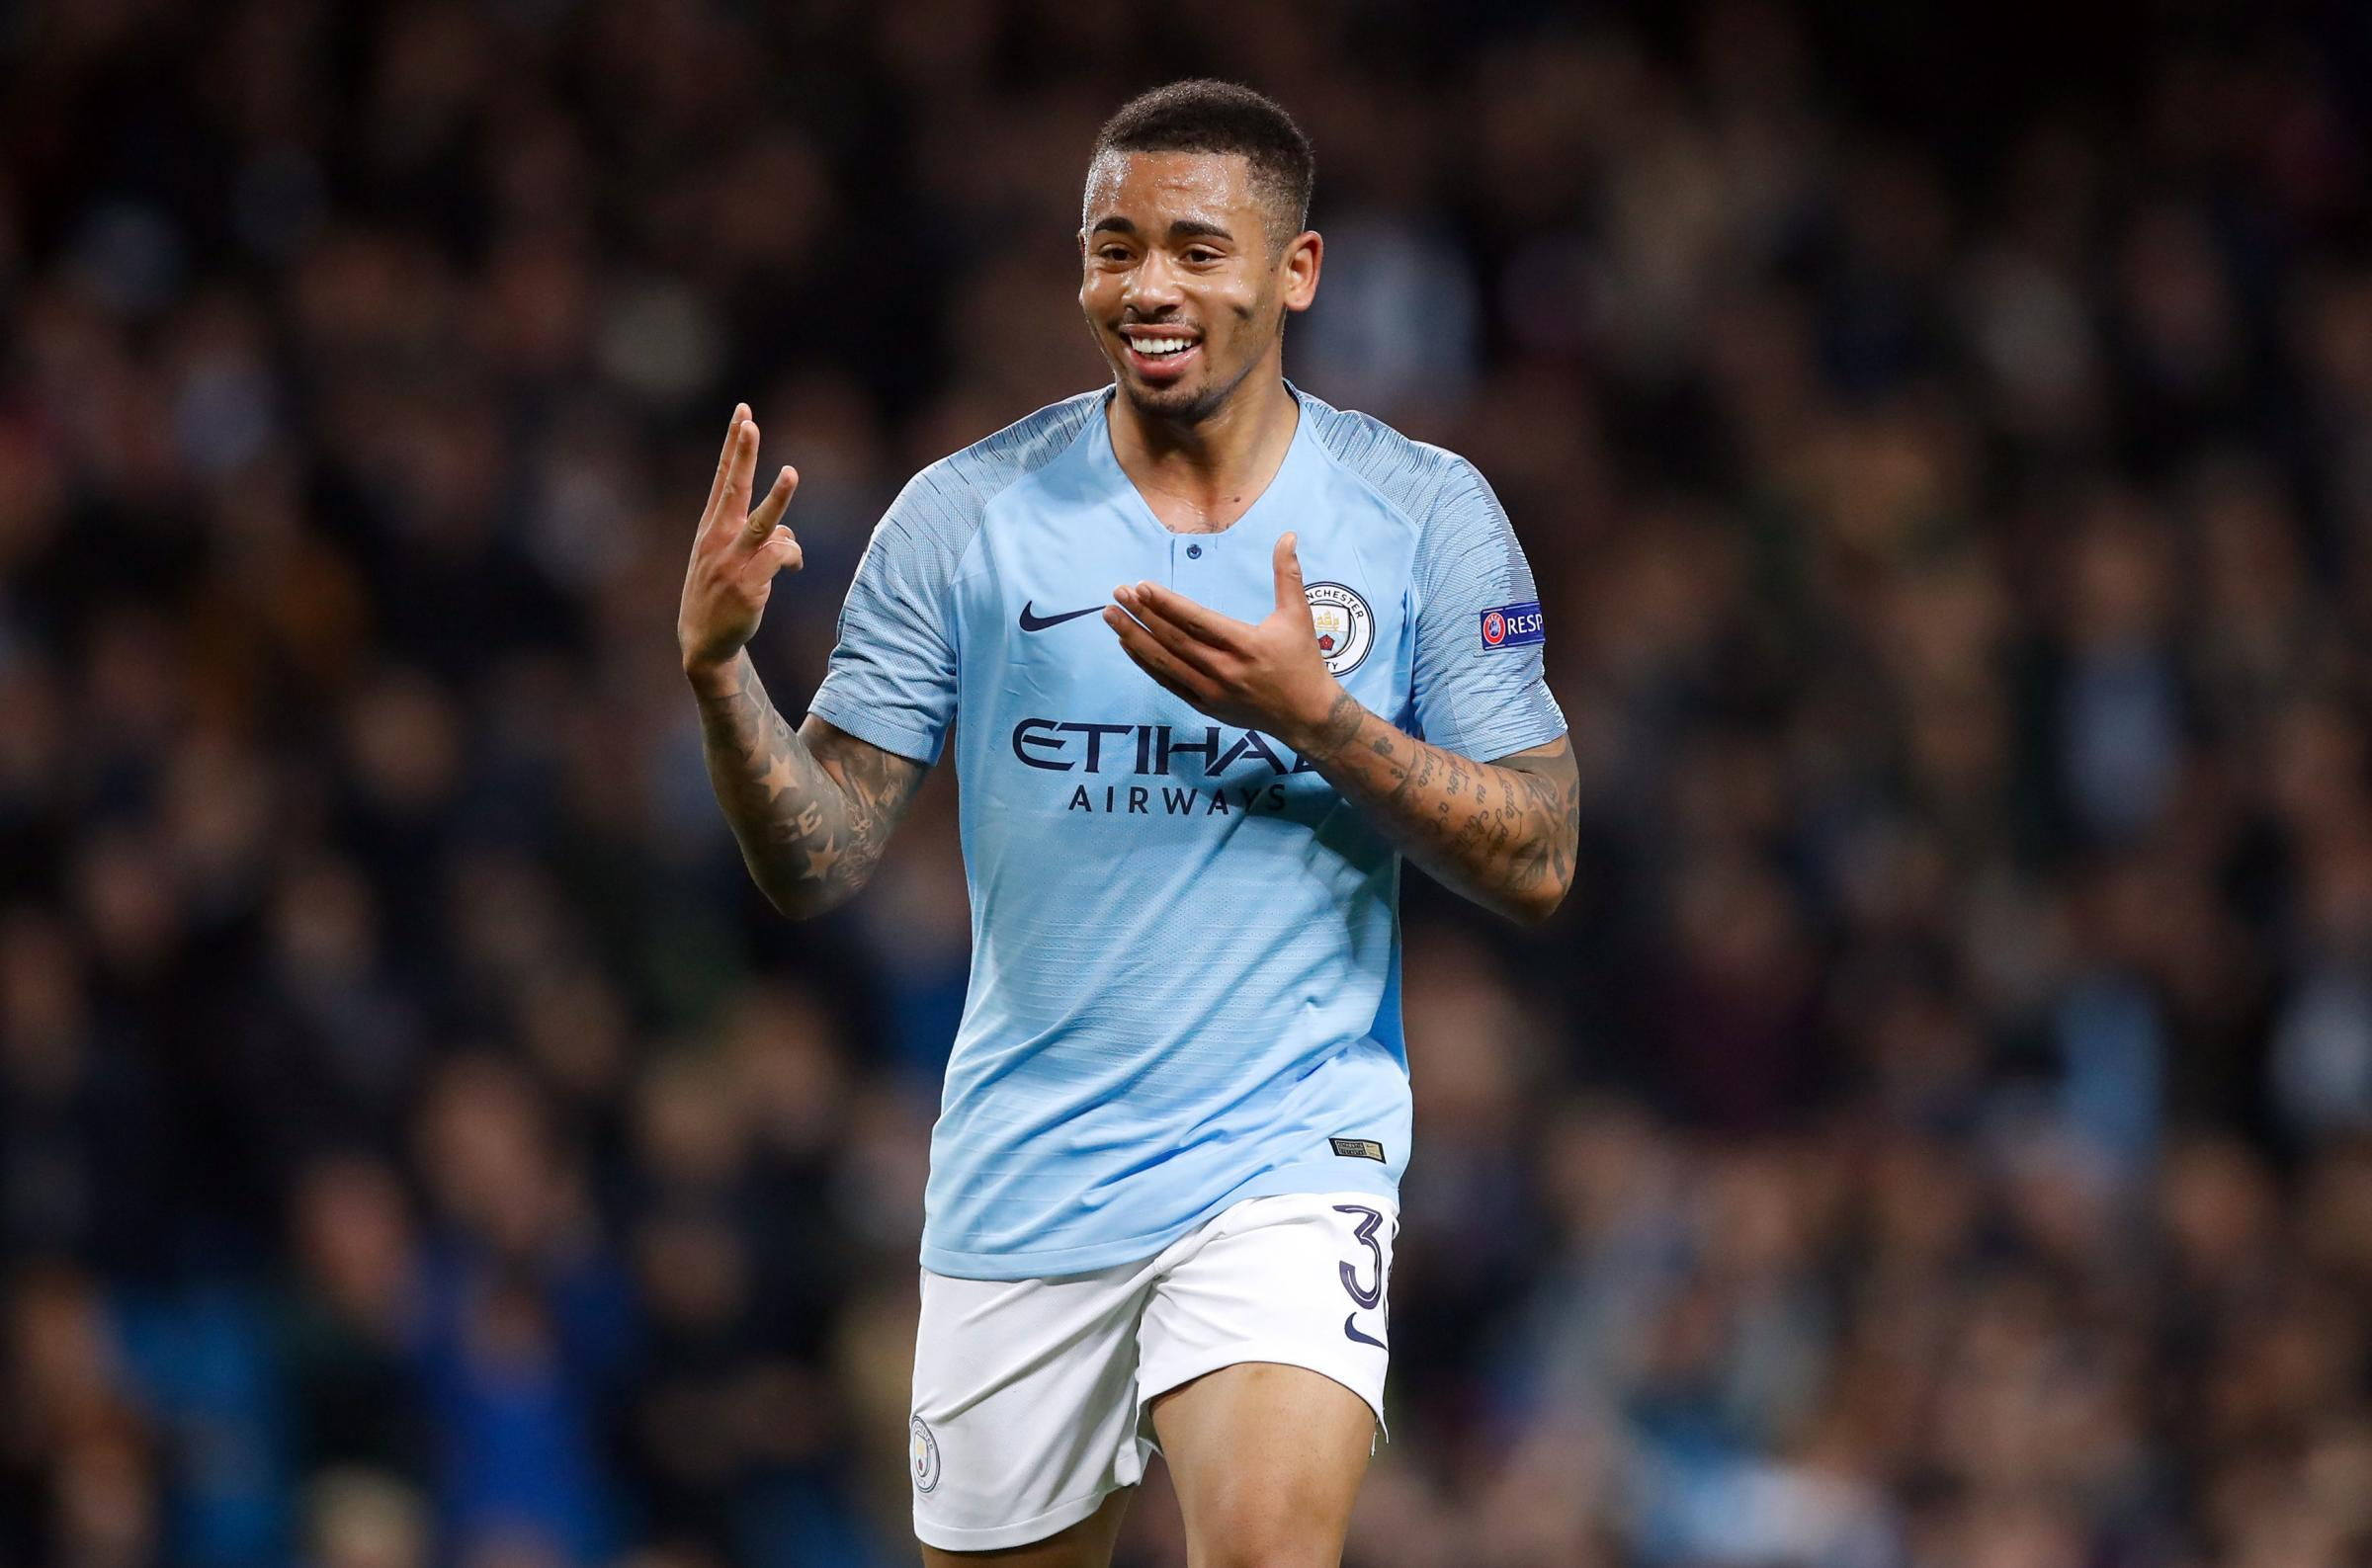 Manchester City's Gabriel Jesus celebrates scoring his side's sixth goal of the game and completing his hat-trick during the UEFA Champions League match at the Etihad Stadium, Manchester. PRESS ASSOCIATION Photo. Picture date: Wednesday November 7